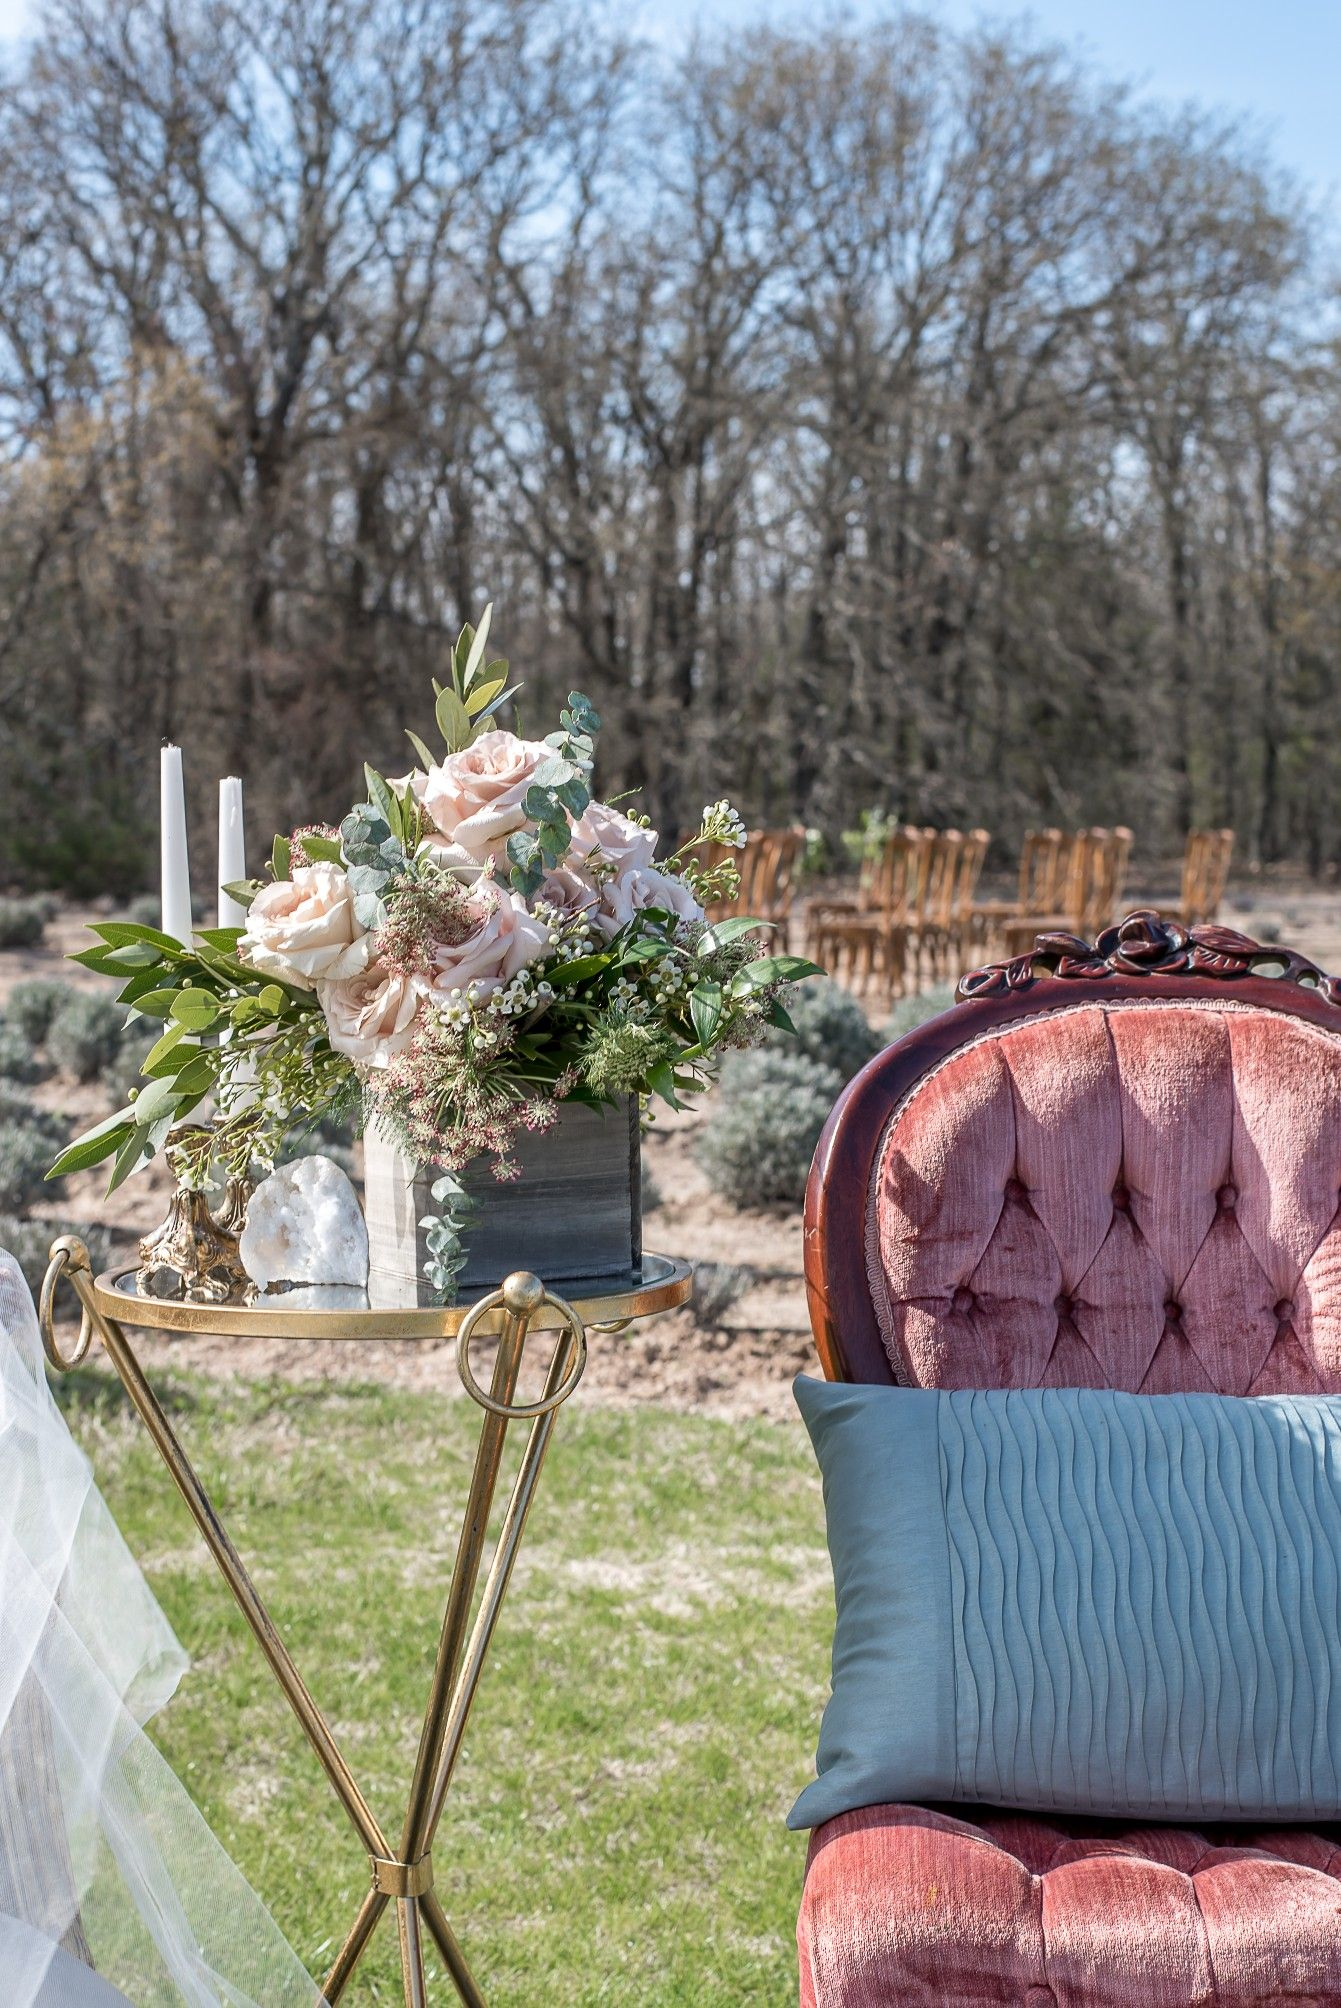 Wedding Sitting Area By Love Birds Vintage Gold Dust Vintage Rentals And Big D Party Rentals Houston Photography Vintage Rentals Party Rentals